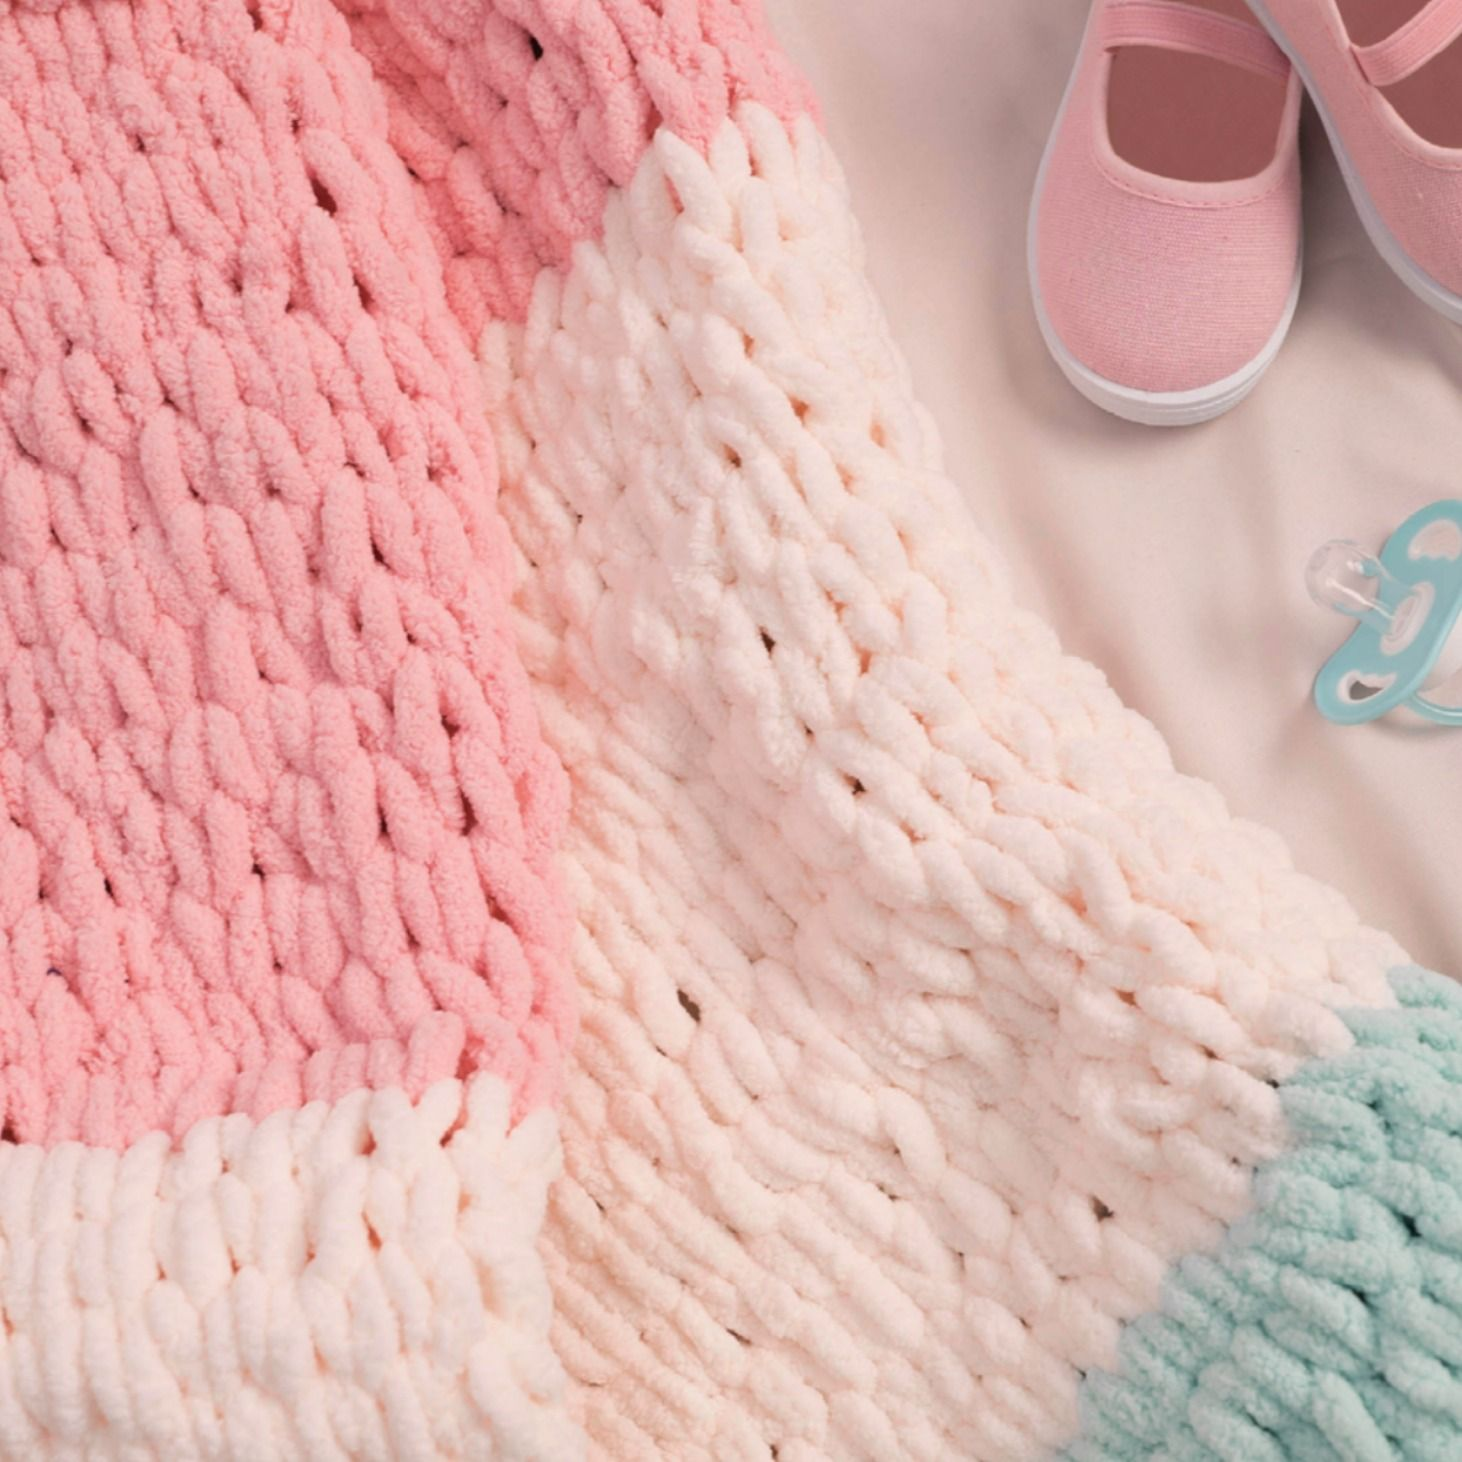 how to make a blanket with yarn without knitting